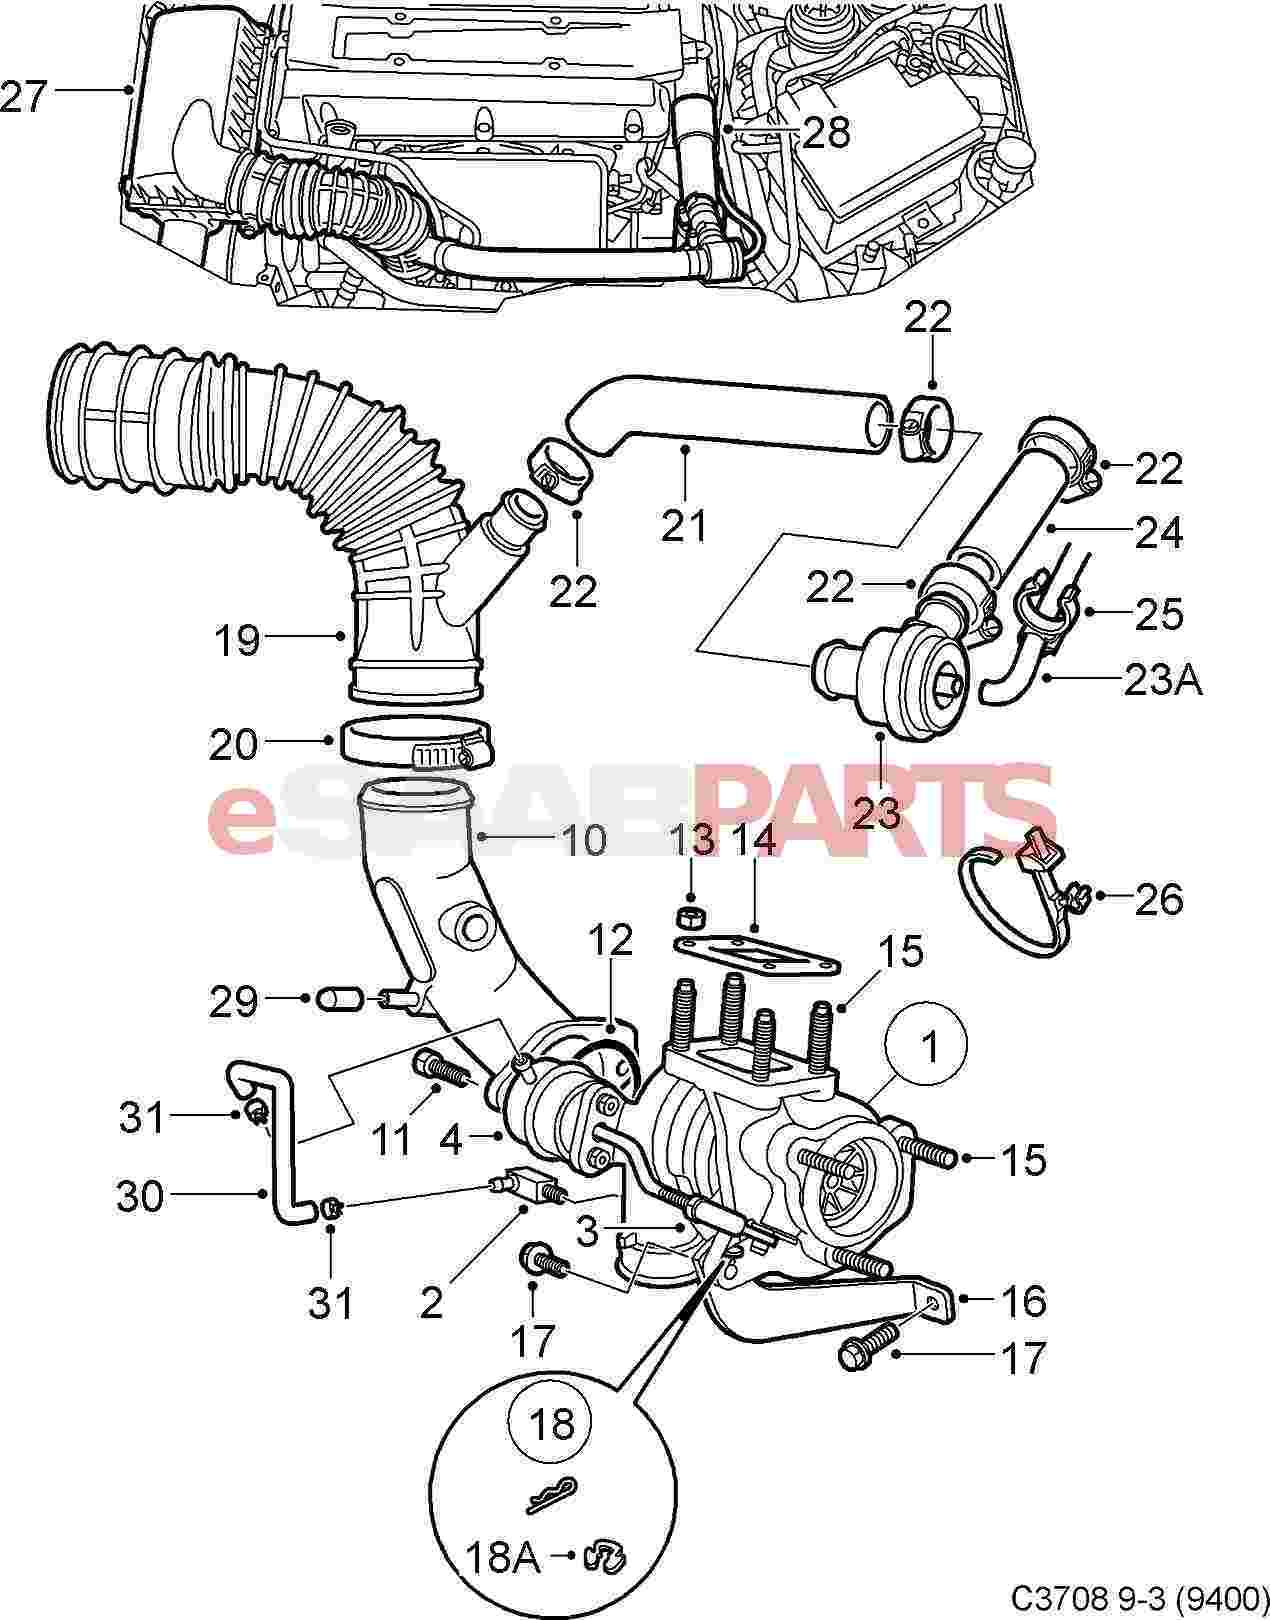 97283 1999 saab engine diagram best wiring library